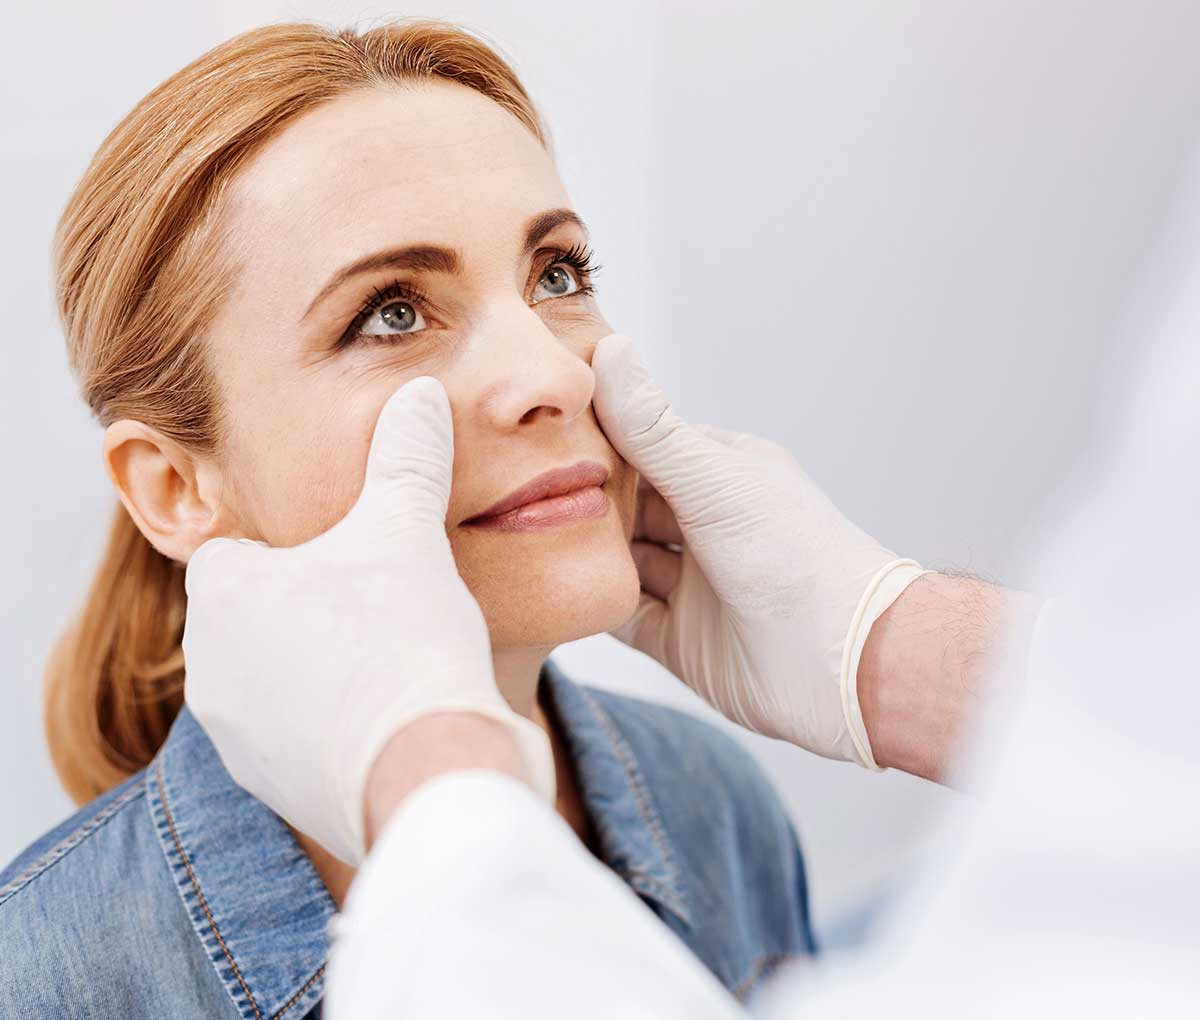 products-plastic-surgery-perth_635556383